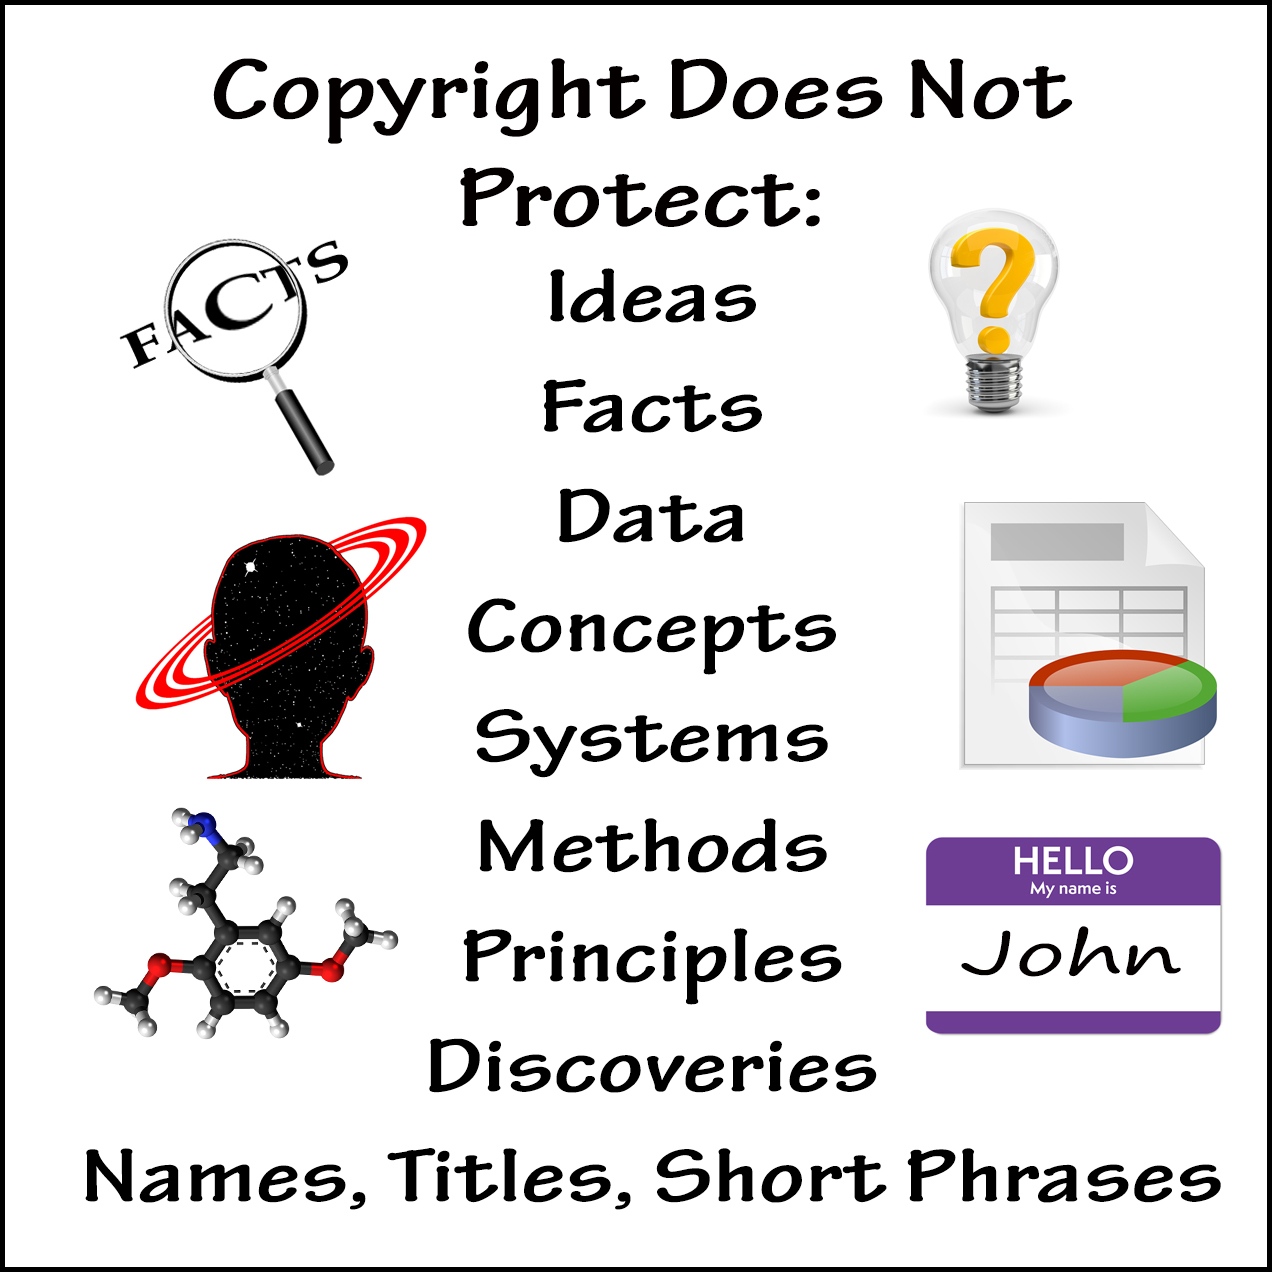 Copyright does not protect ideas, facts, concepts, systems, methods, principles, discoveries, names, titles, or short phrases